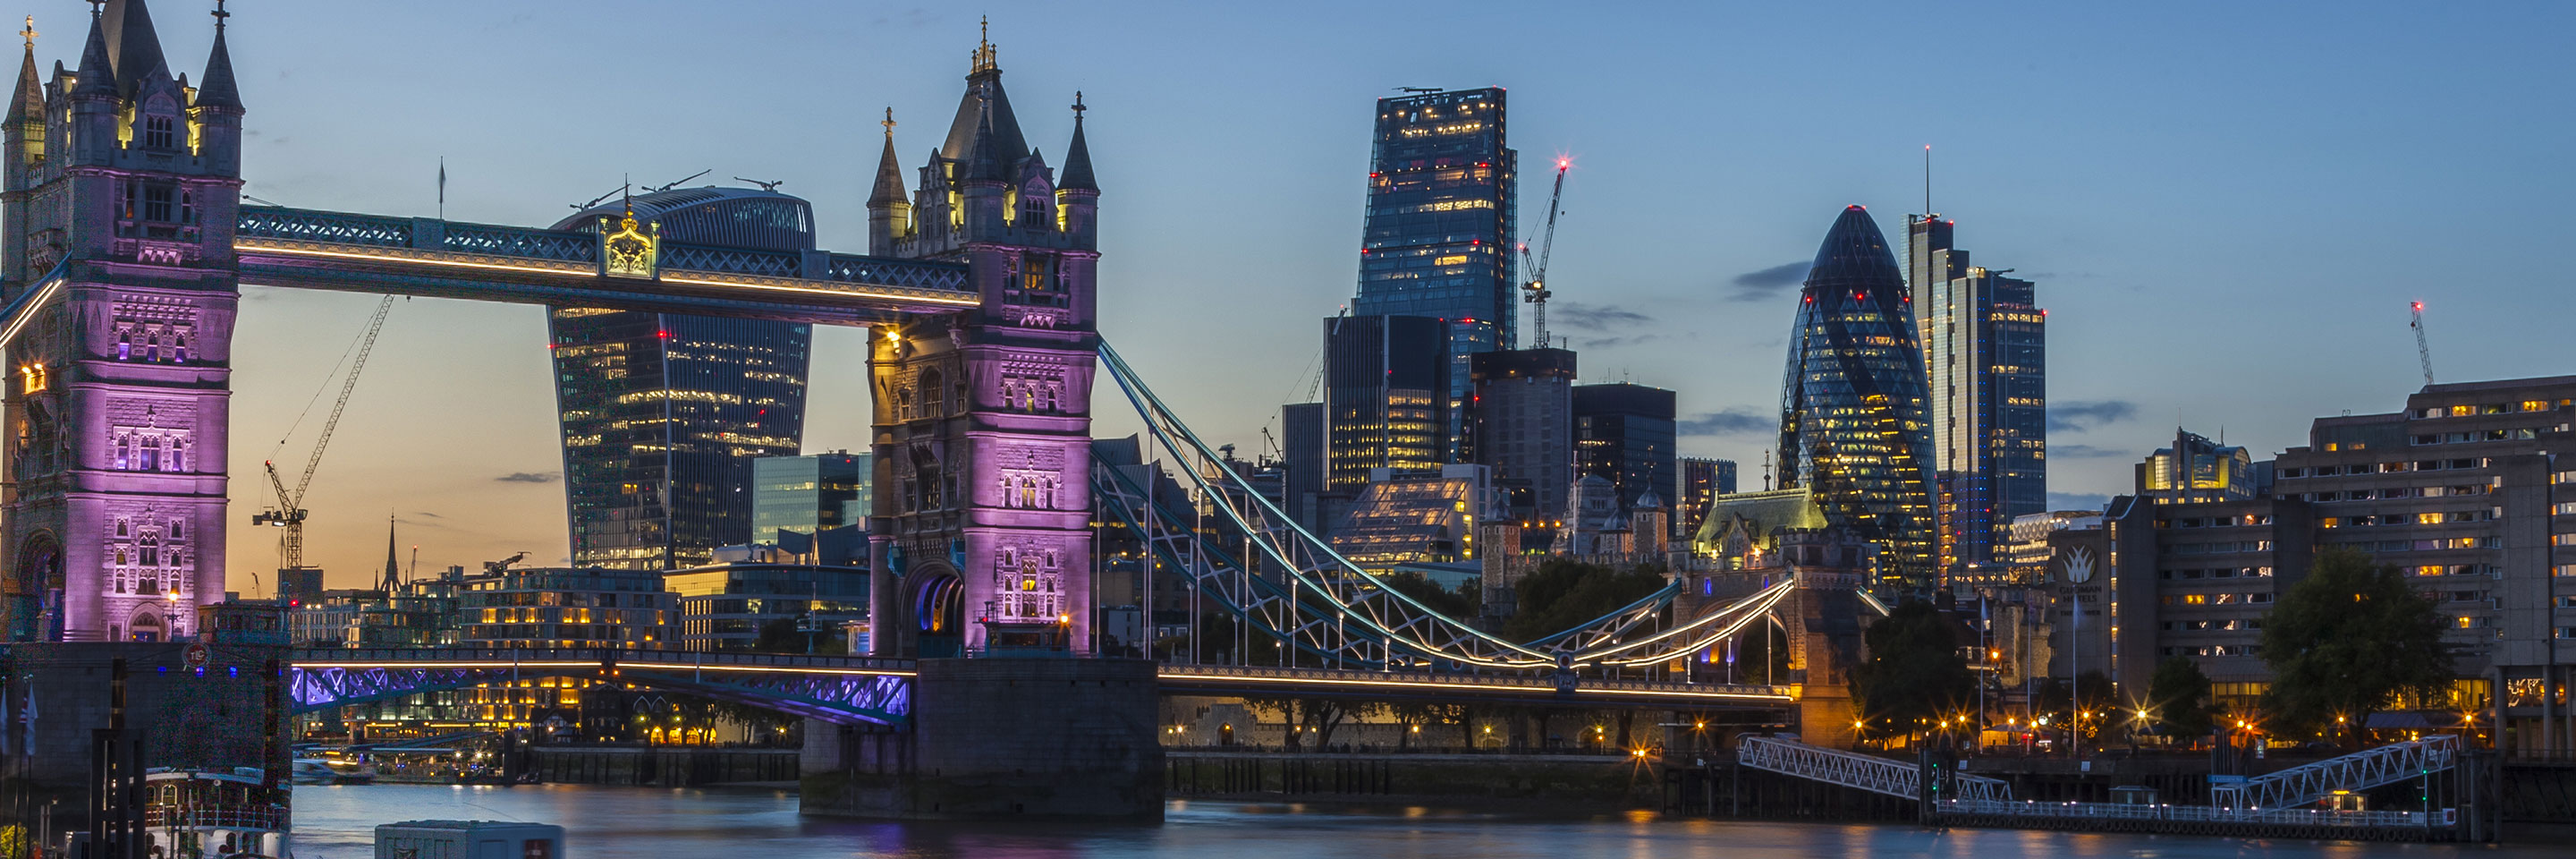 Tower Bridge, The Gherkin and the City of London